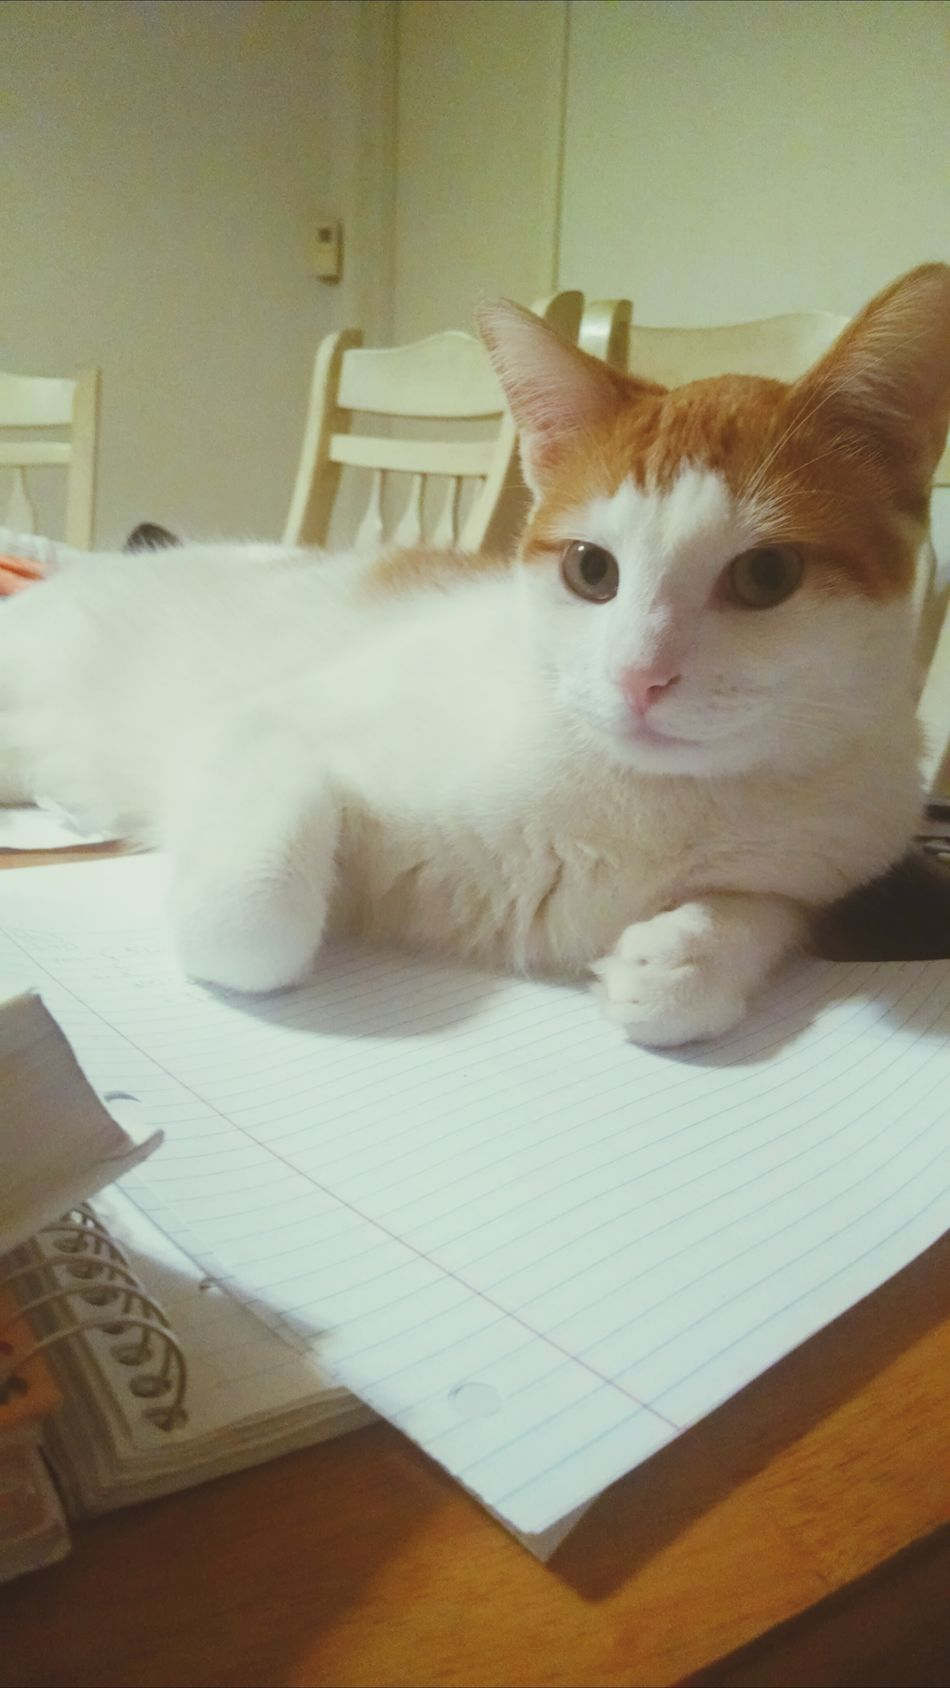 Cat Cat♡ Homework Buddy  My Distraction From Studying Lol